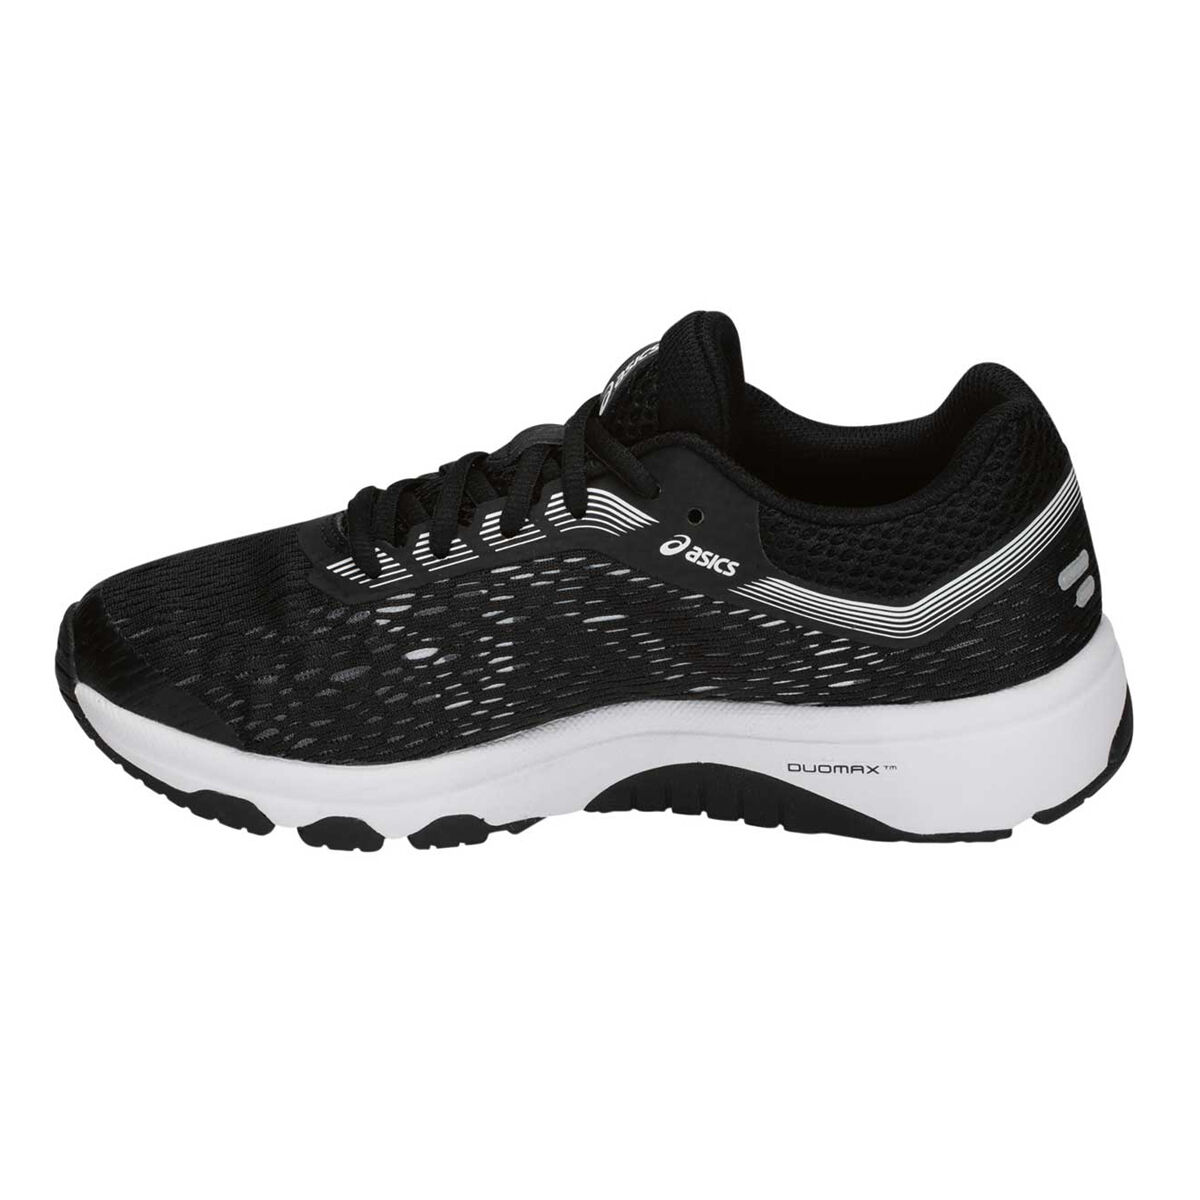 Asics GT 1000 7 Boys Running Shoes Black White US 7